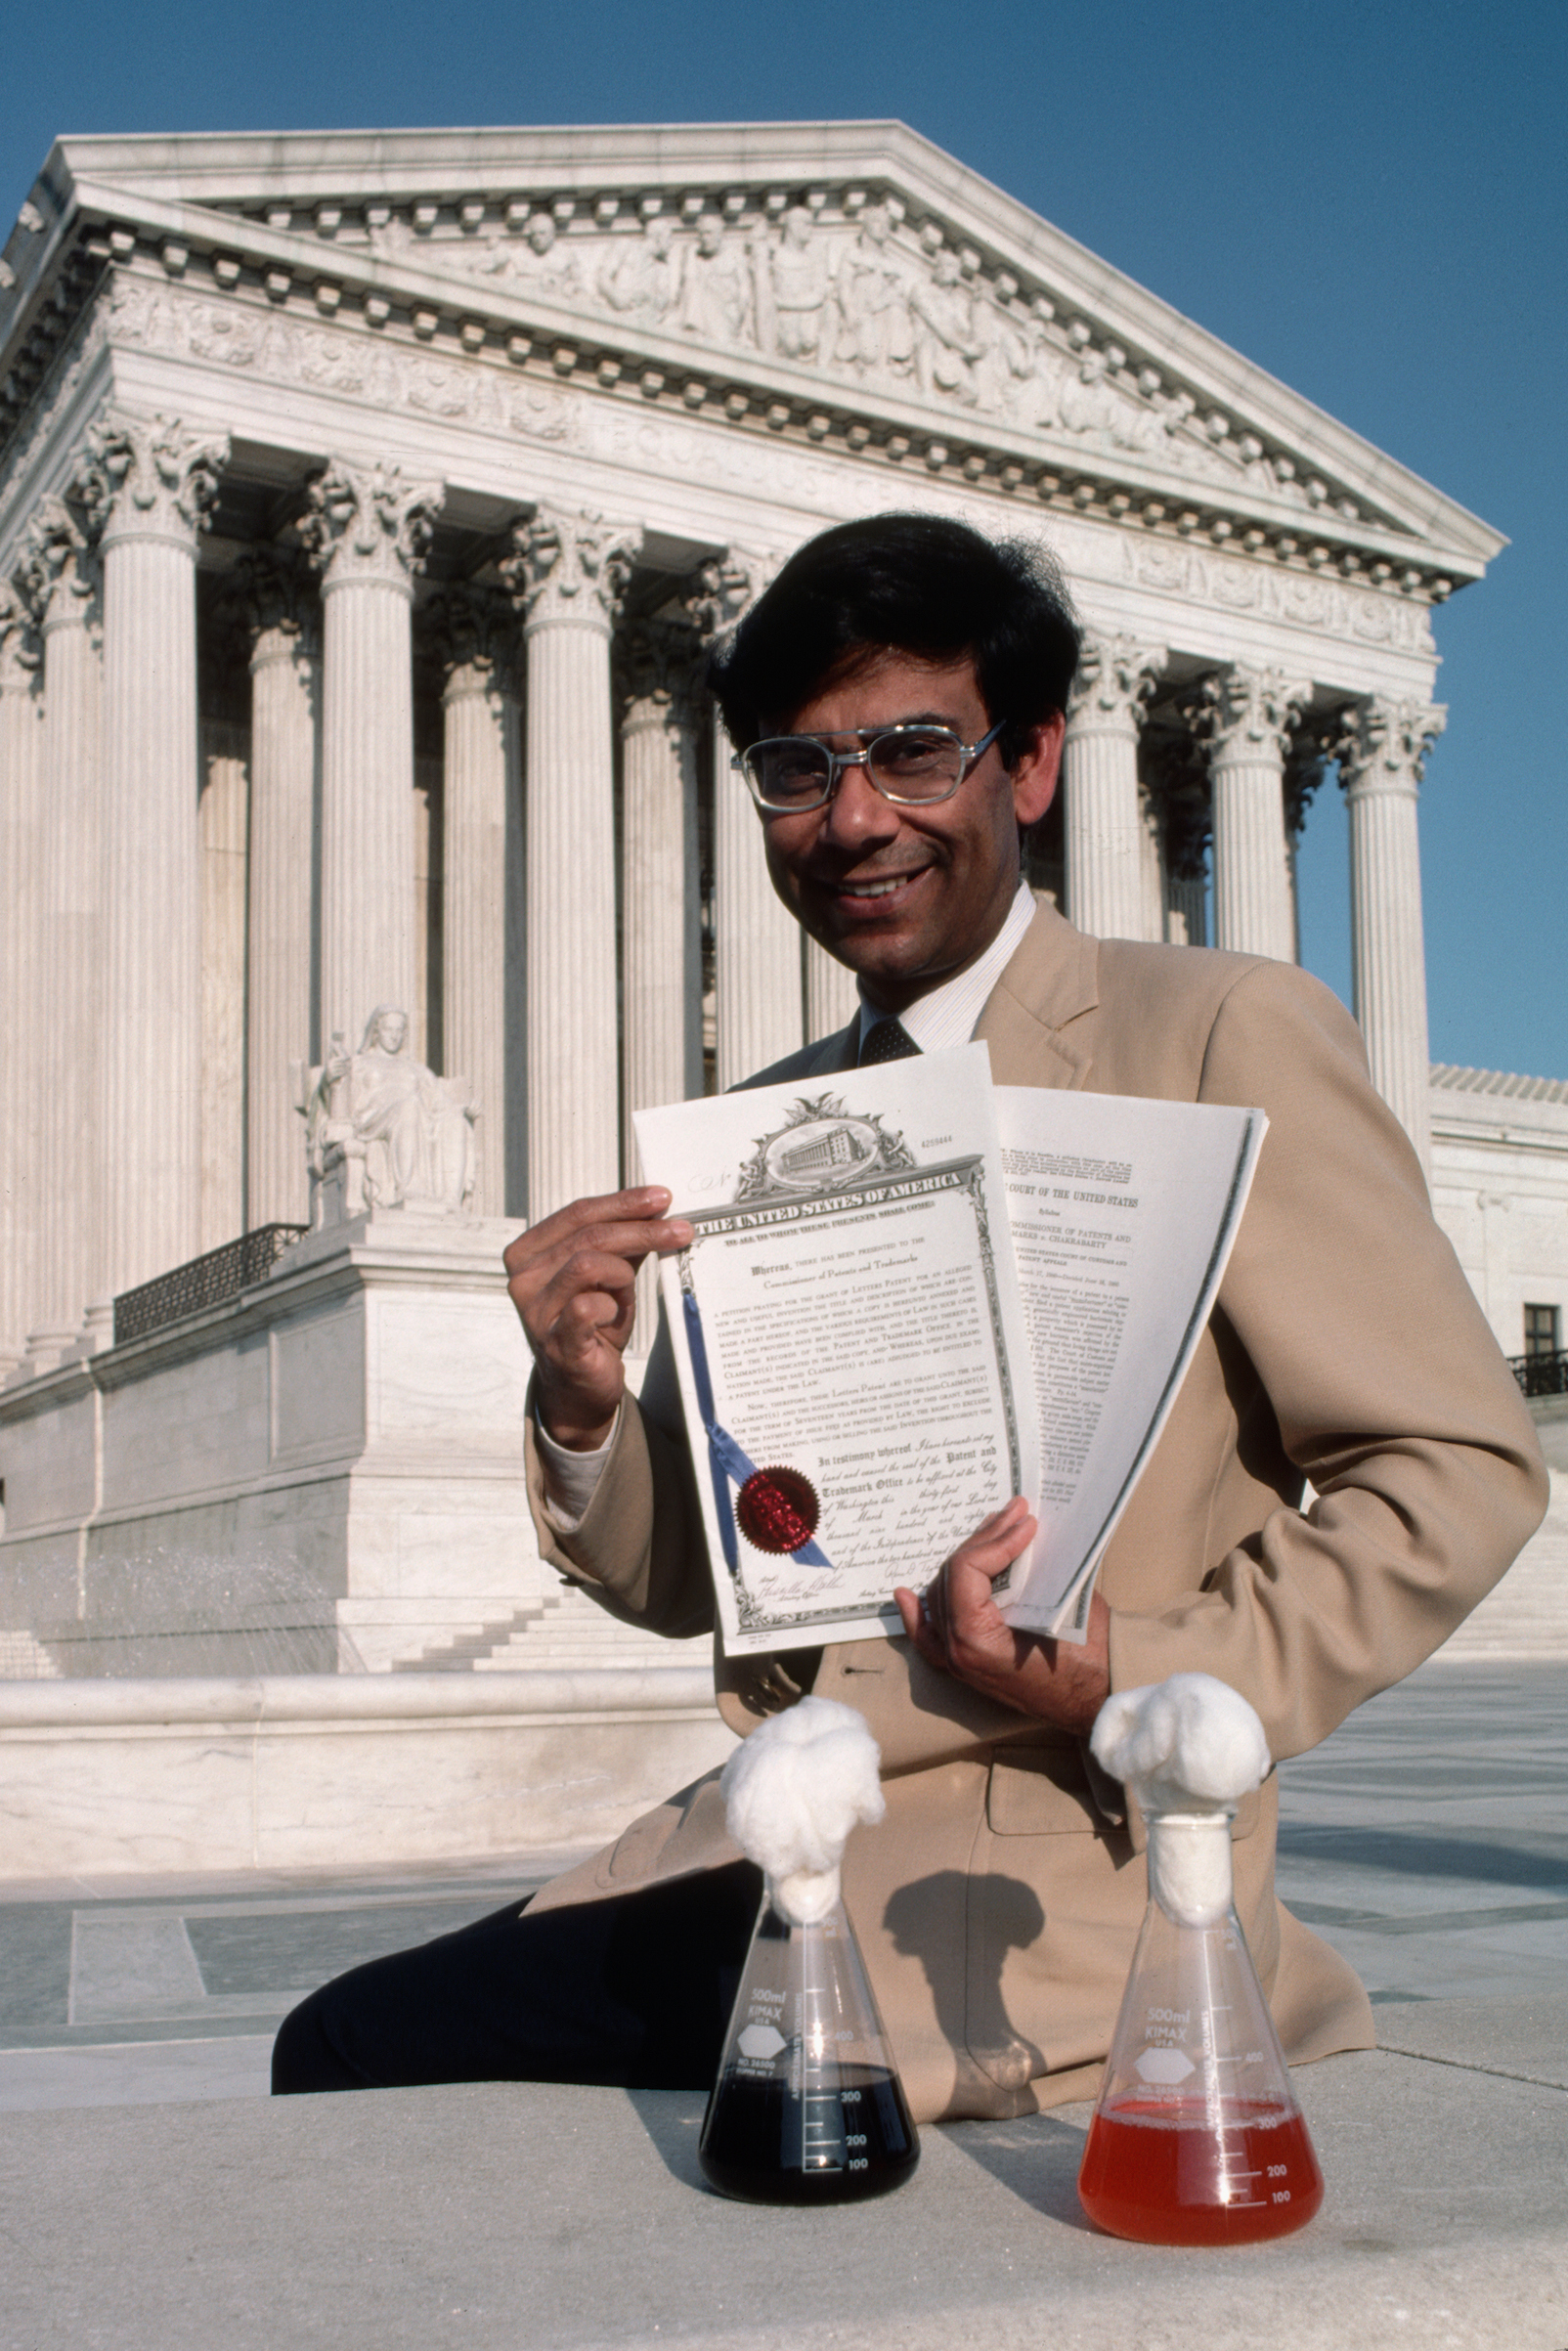 In front of the Supreme Court of the United States, Dr. Ananda Chakrabarty displays a trio of souvenirs of his pioneering experiments with a recombinant DNA created oil spill-eating bacteria.